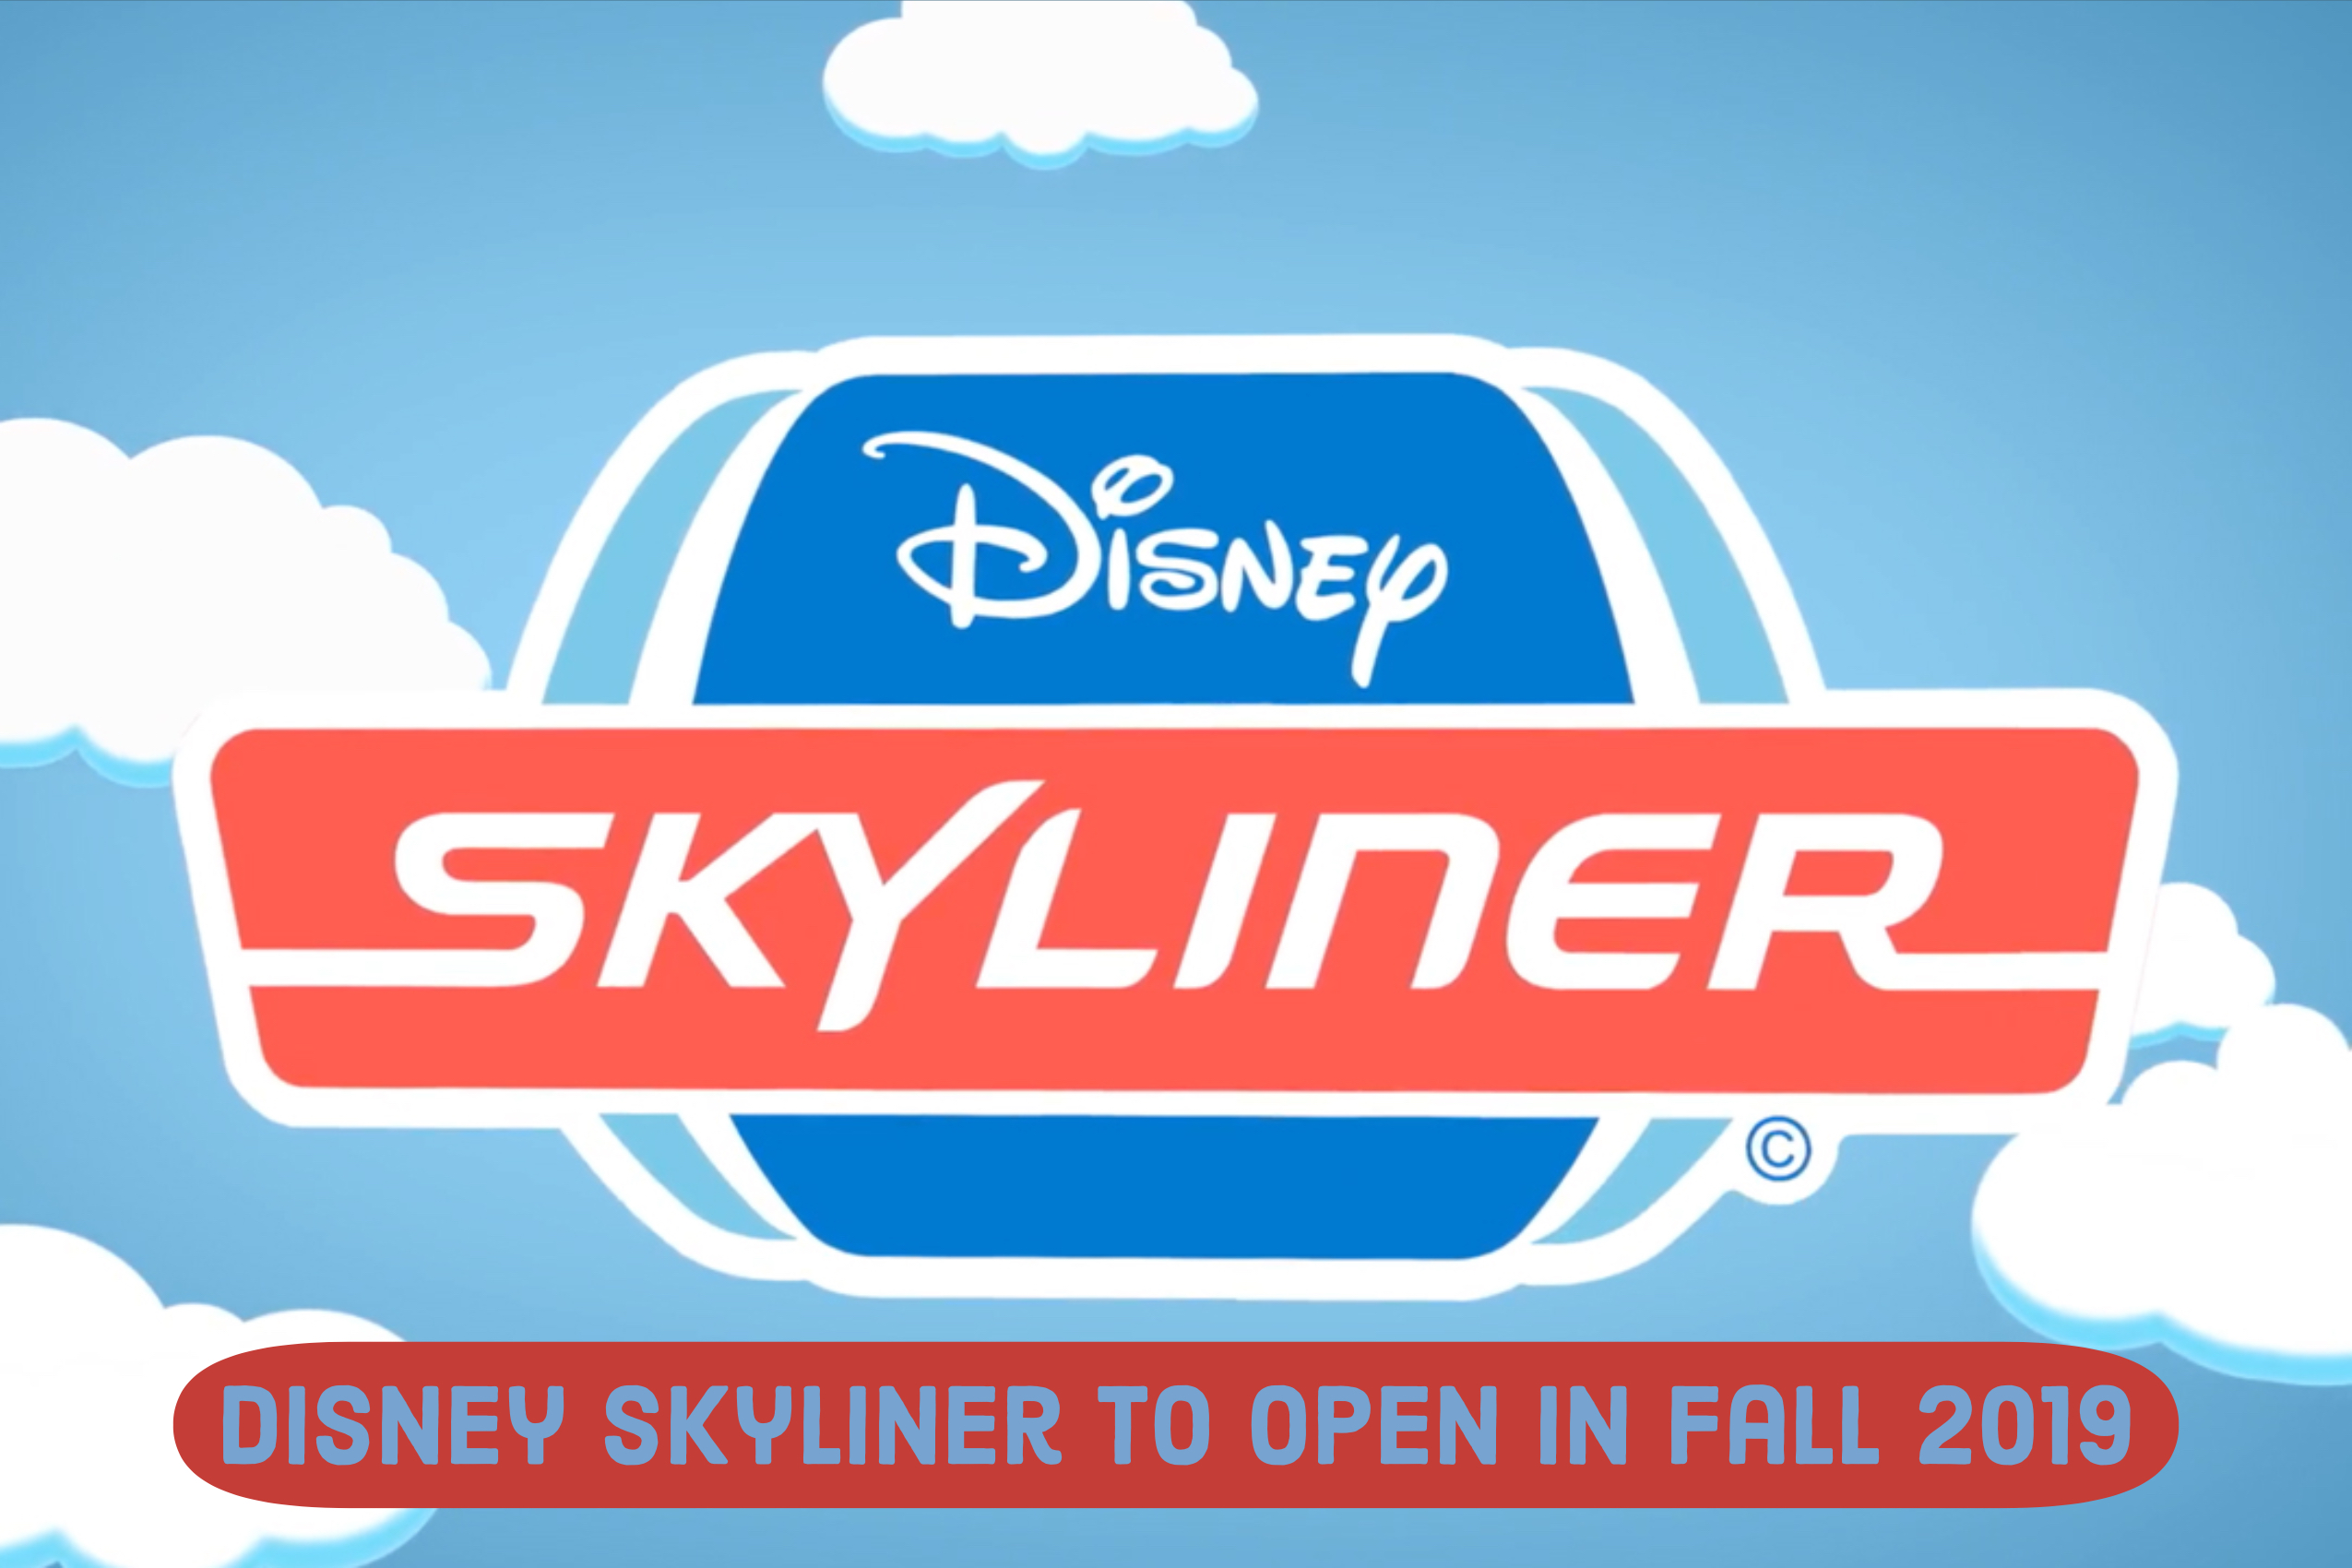 Gusts to Start Flying High Above Walt Disney World Resort Aboard Disney Skyliner in Fall 2019